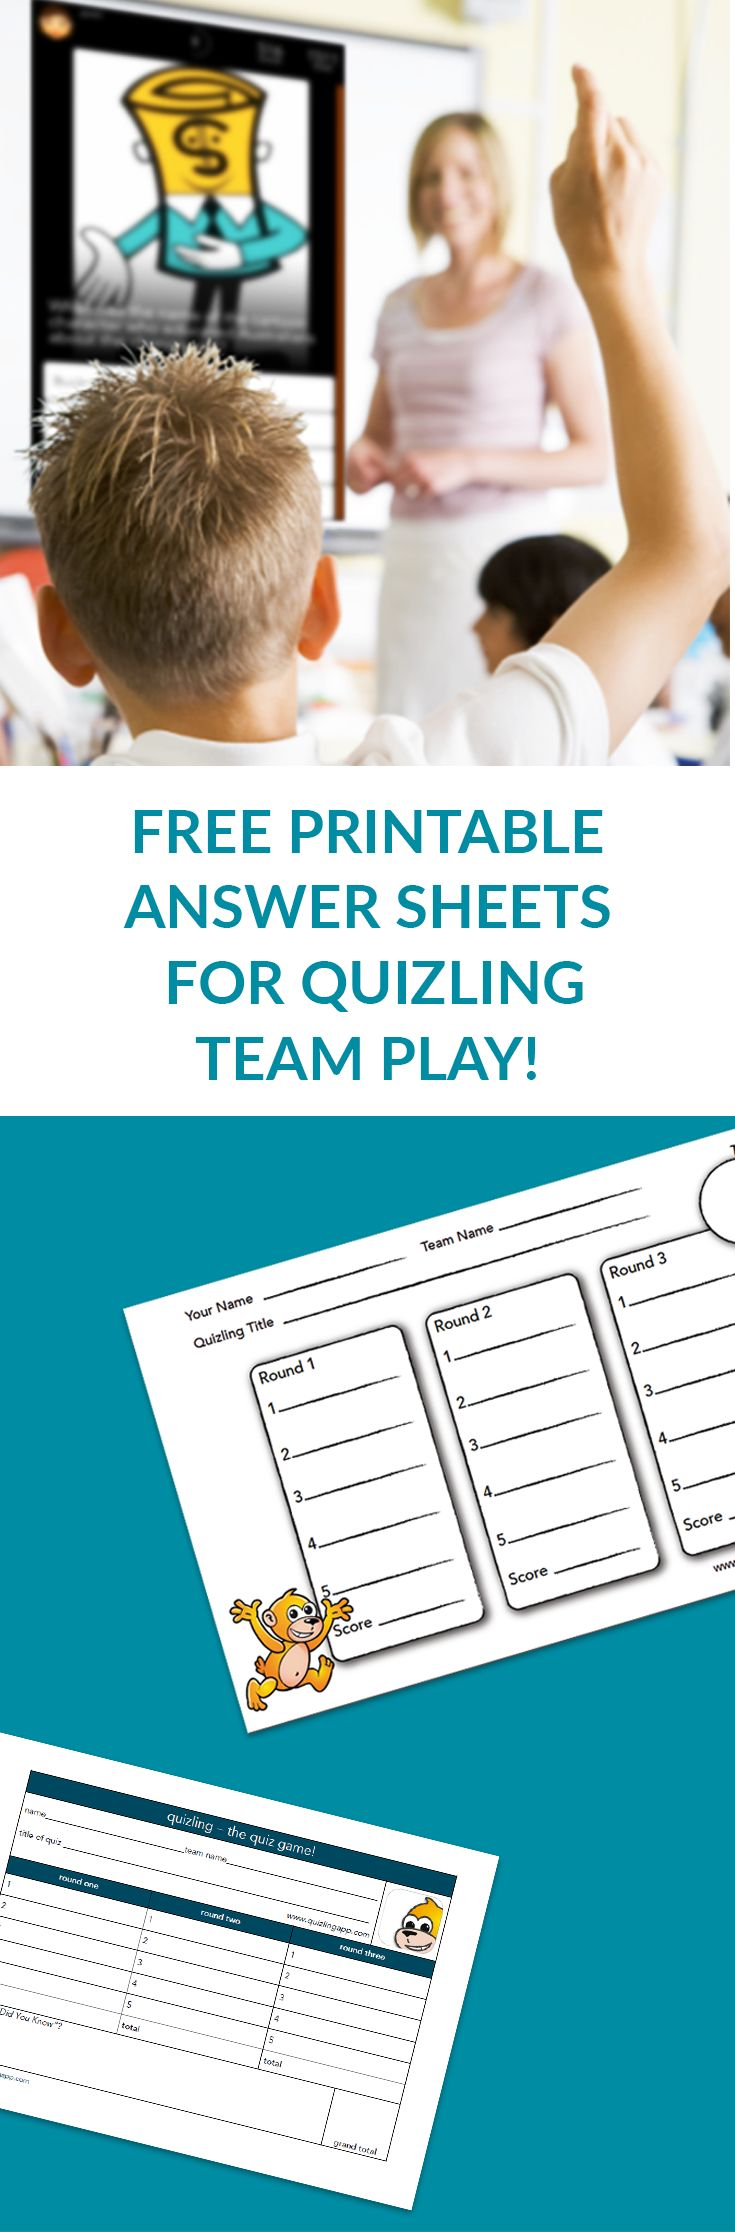 Quizling Classroom Activity idea for teachers: Have your class play a quiz on Quizling in teams! Plug your device into a smart board or projector then have your teams write their answers on these free printable answer sheets. Teachers can make the best use of educational technology by integrating it to lessons.  Download PDF Printables here(copy and paste) ow.ly/GSqY304n9CZ   ow.ly/SegE304n9Fw